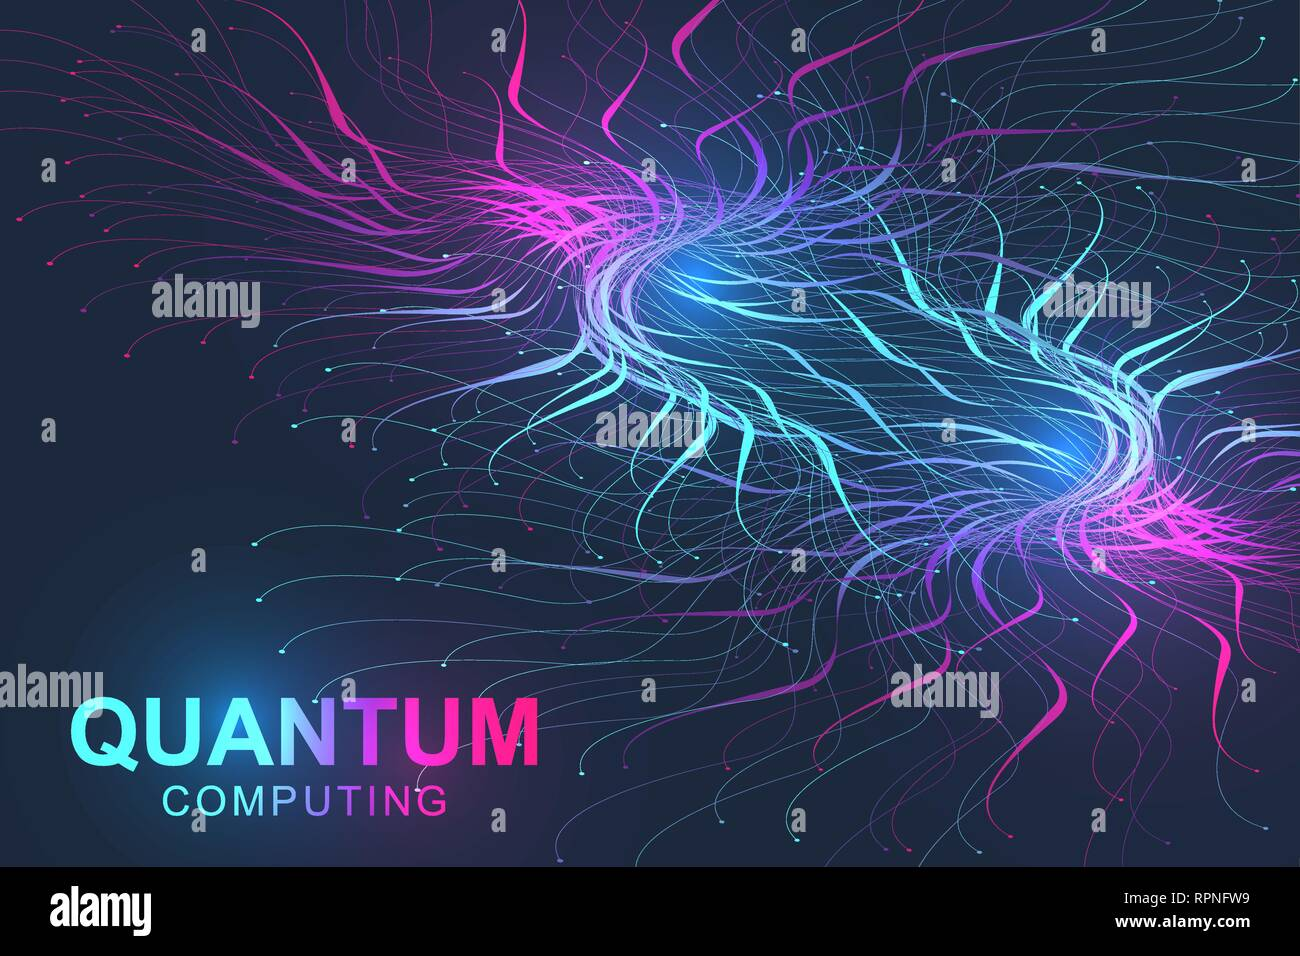 Quantum computer technology concept. Deep learning artificial intelligence. Big data algorithms visualization for business, science, technology. Waves - Stock Image